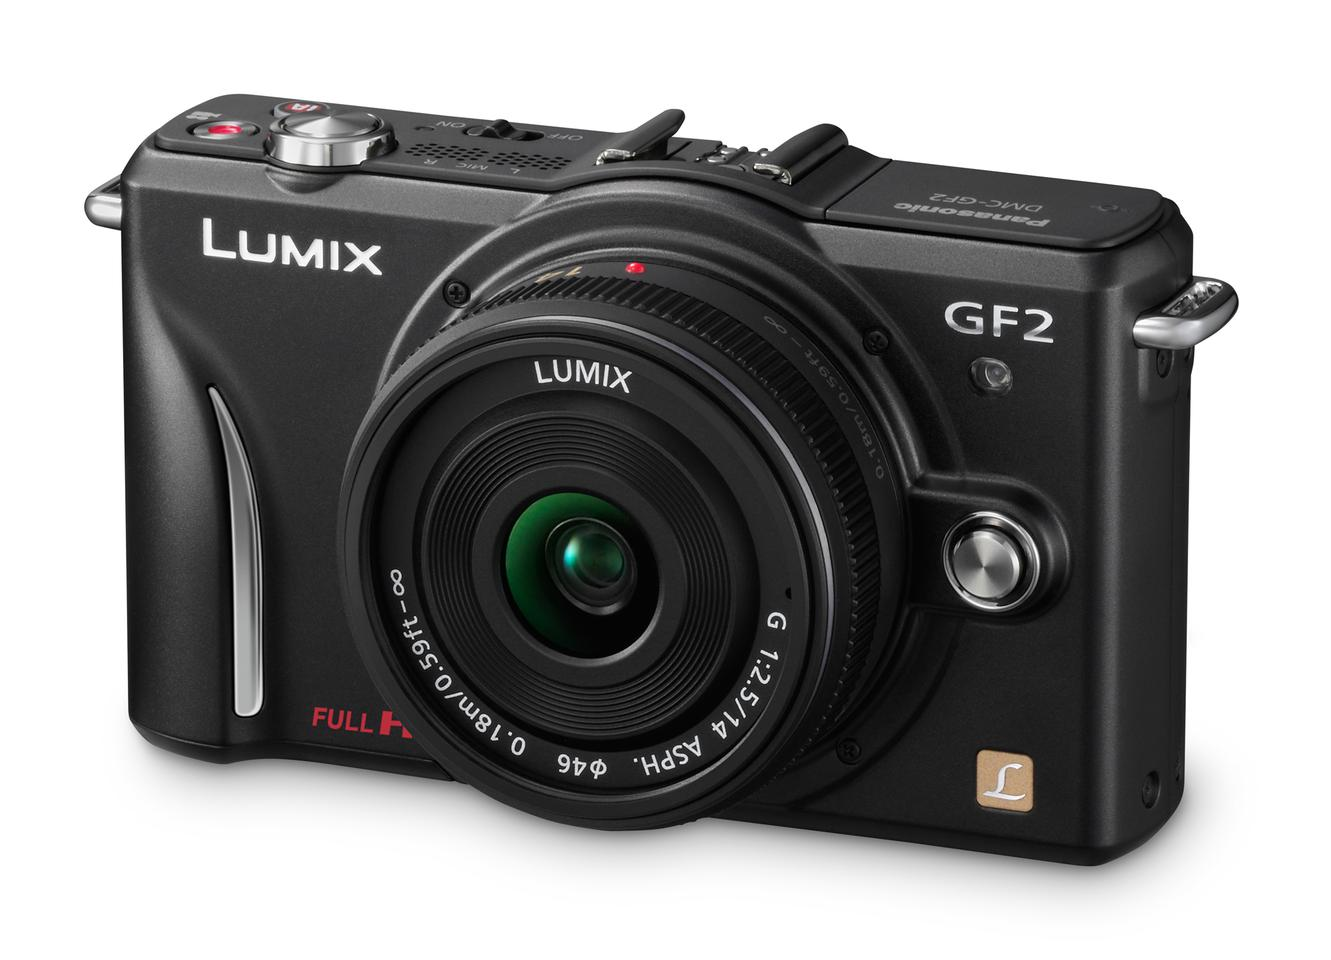 Panasonic has given the DMC-GF2 a host of new features, including a more powerful image processor, increased its sensitivity and touchscreen interactivity